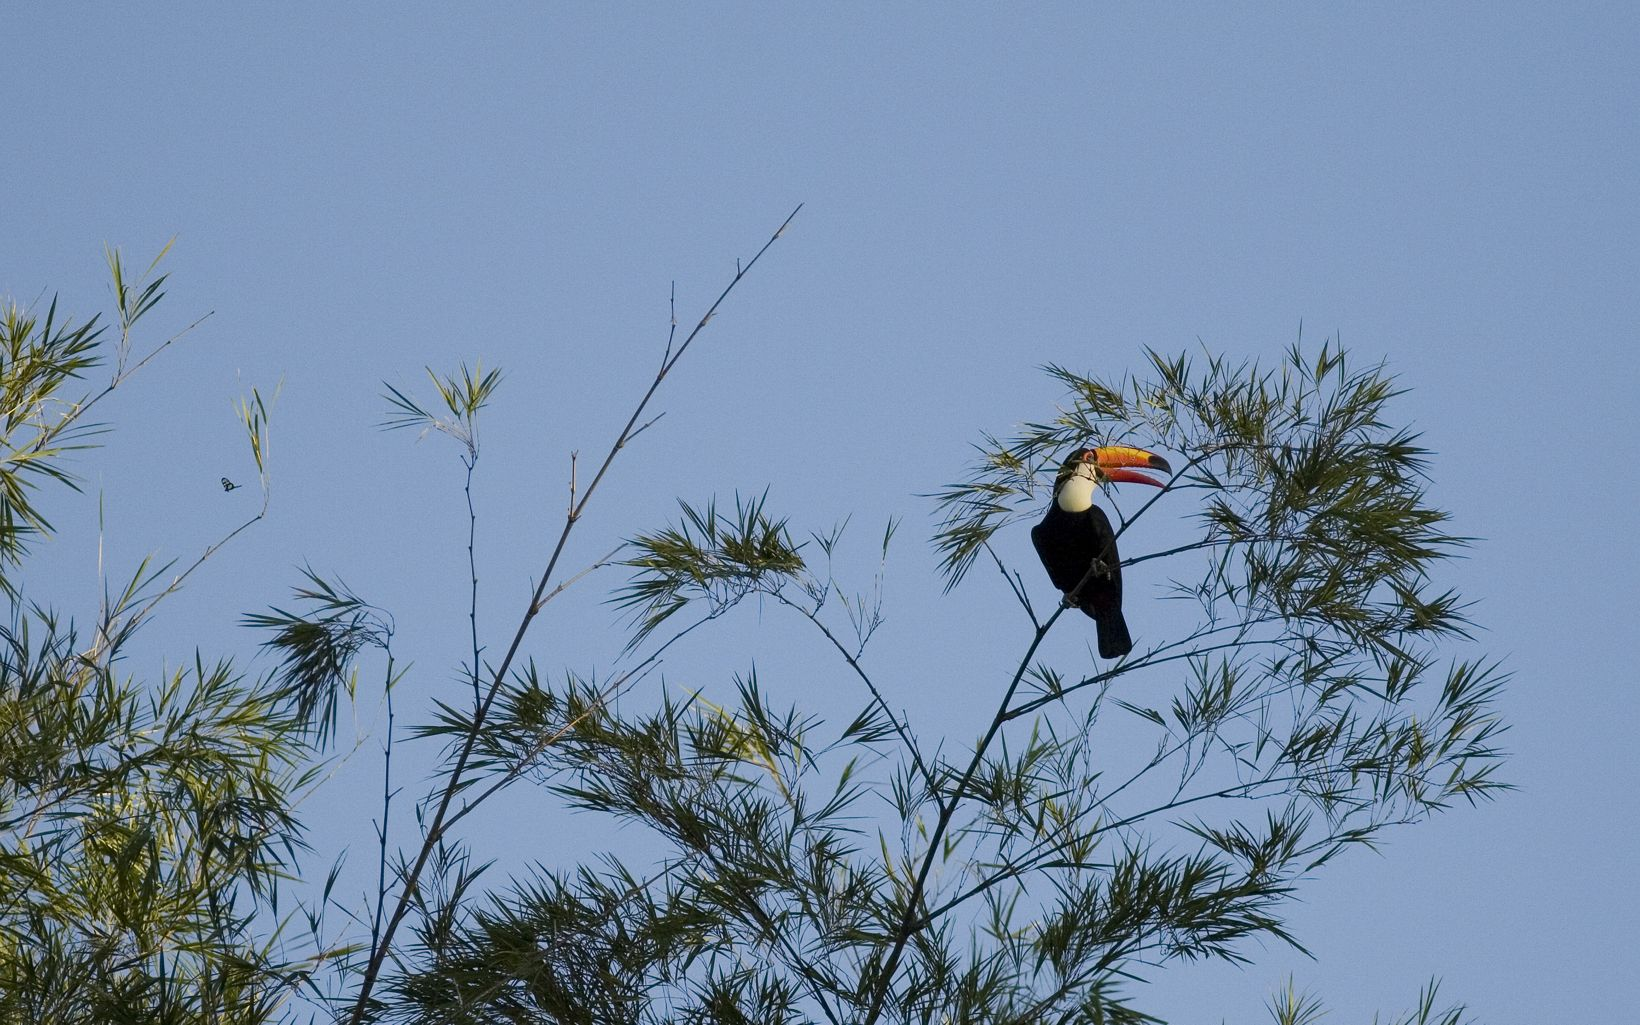 Toucan perched in bamboo along the Iguazu River.